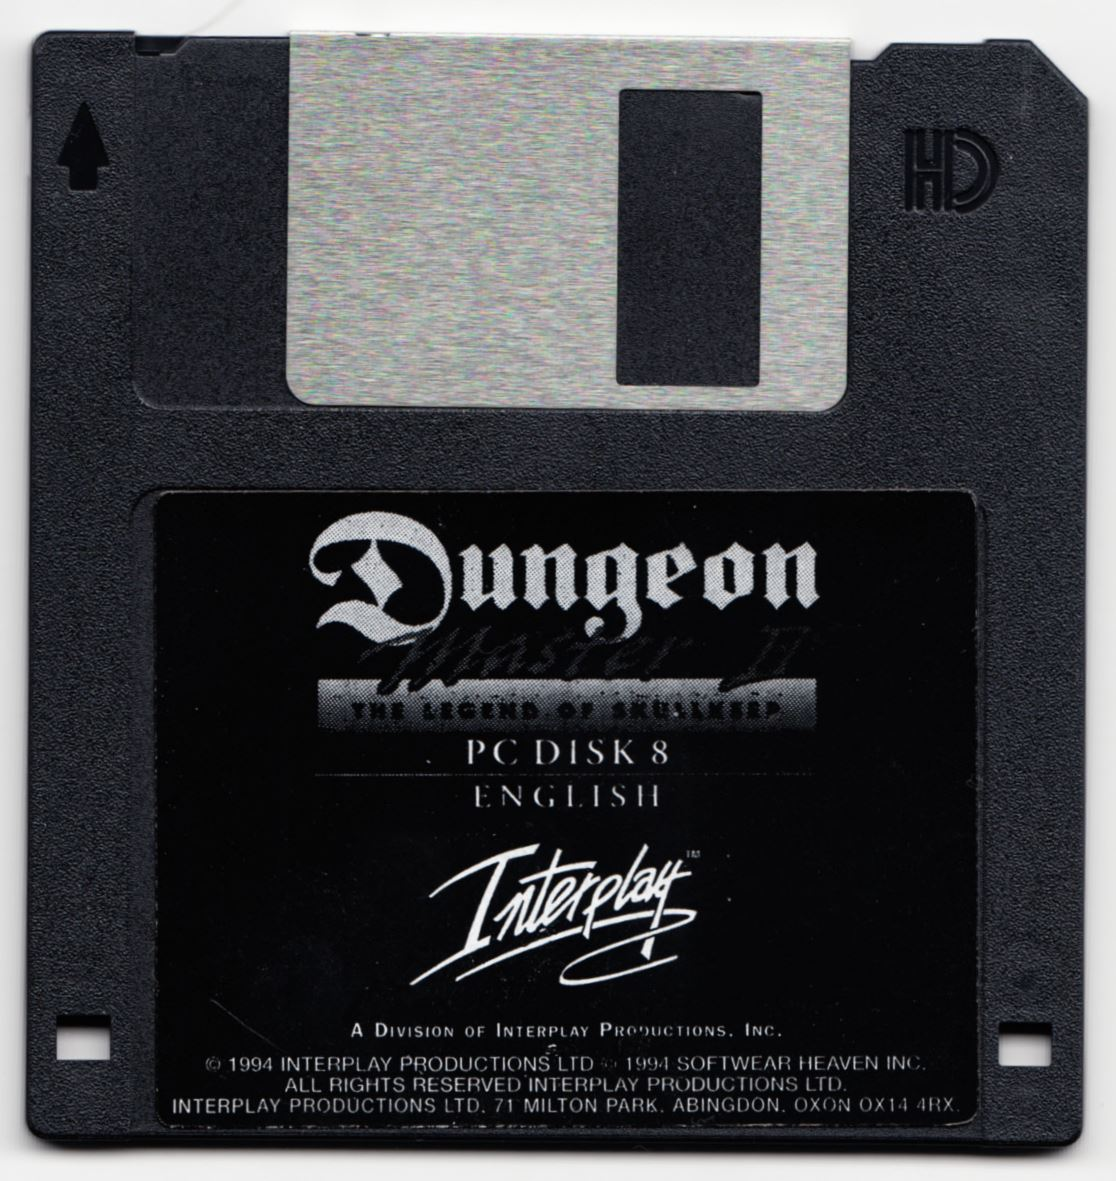 Game - Dungeon Master II - UK - PC - Floppy Version - Disk 8 - Front - Scan